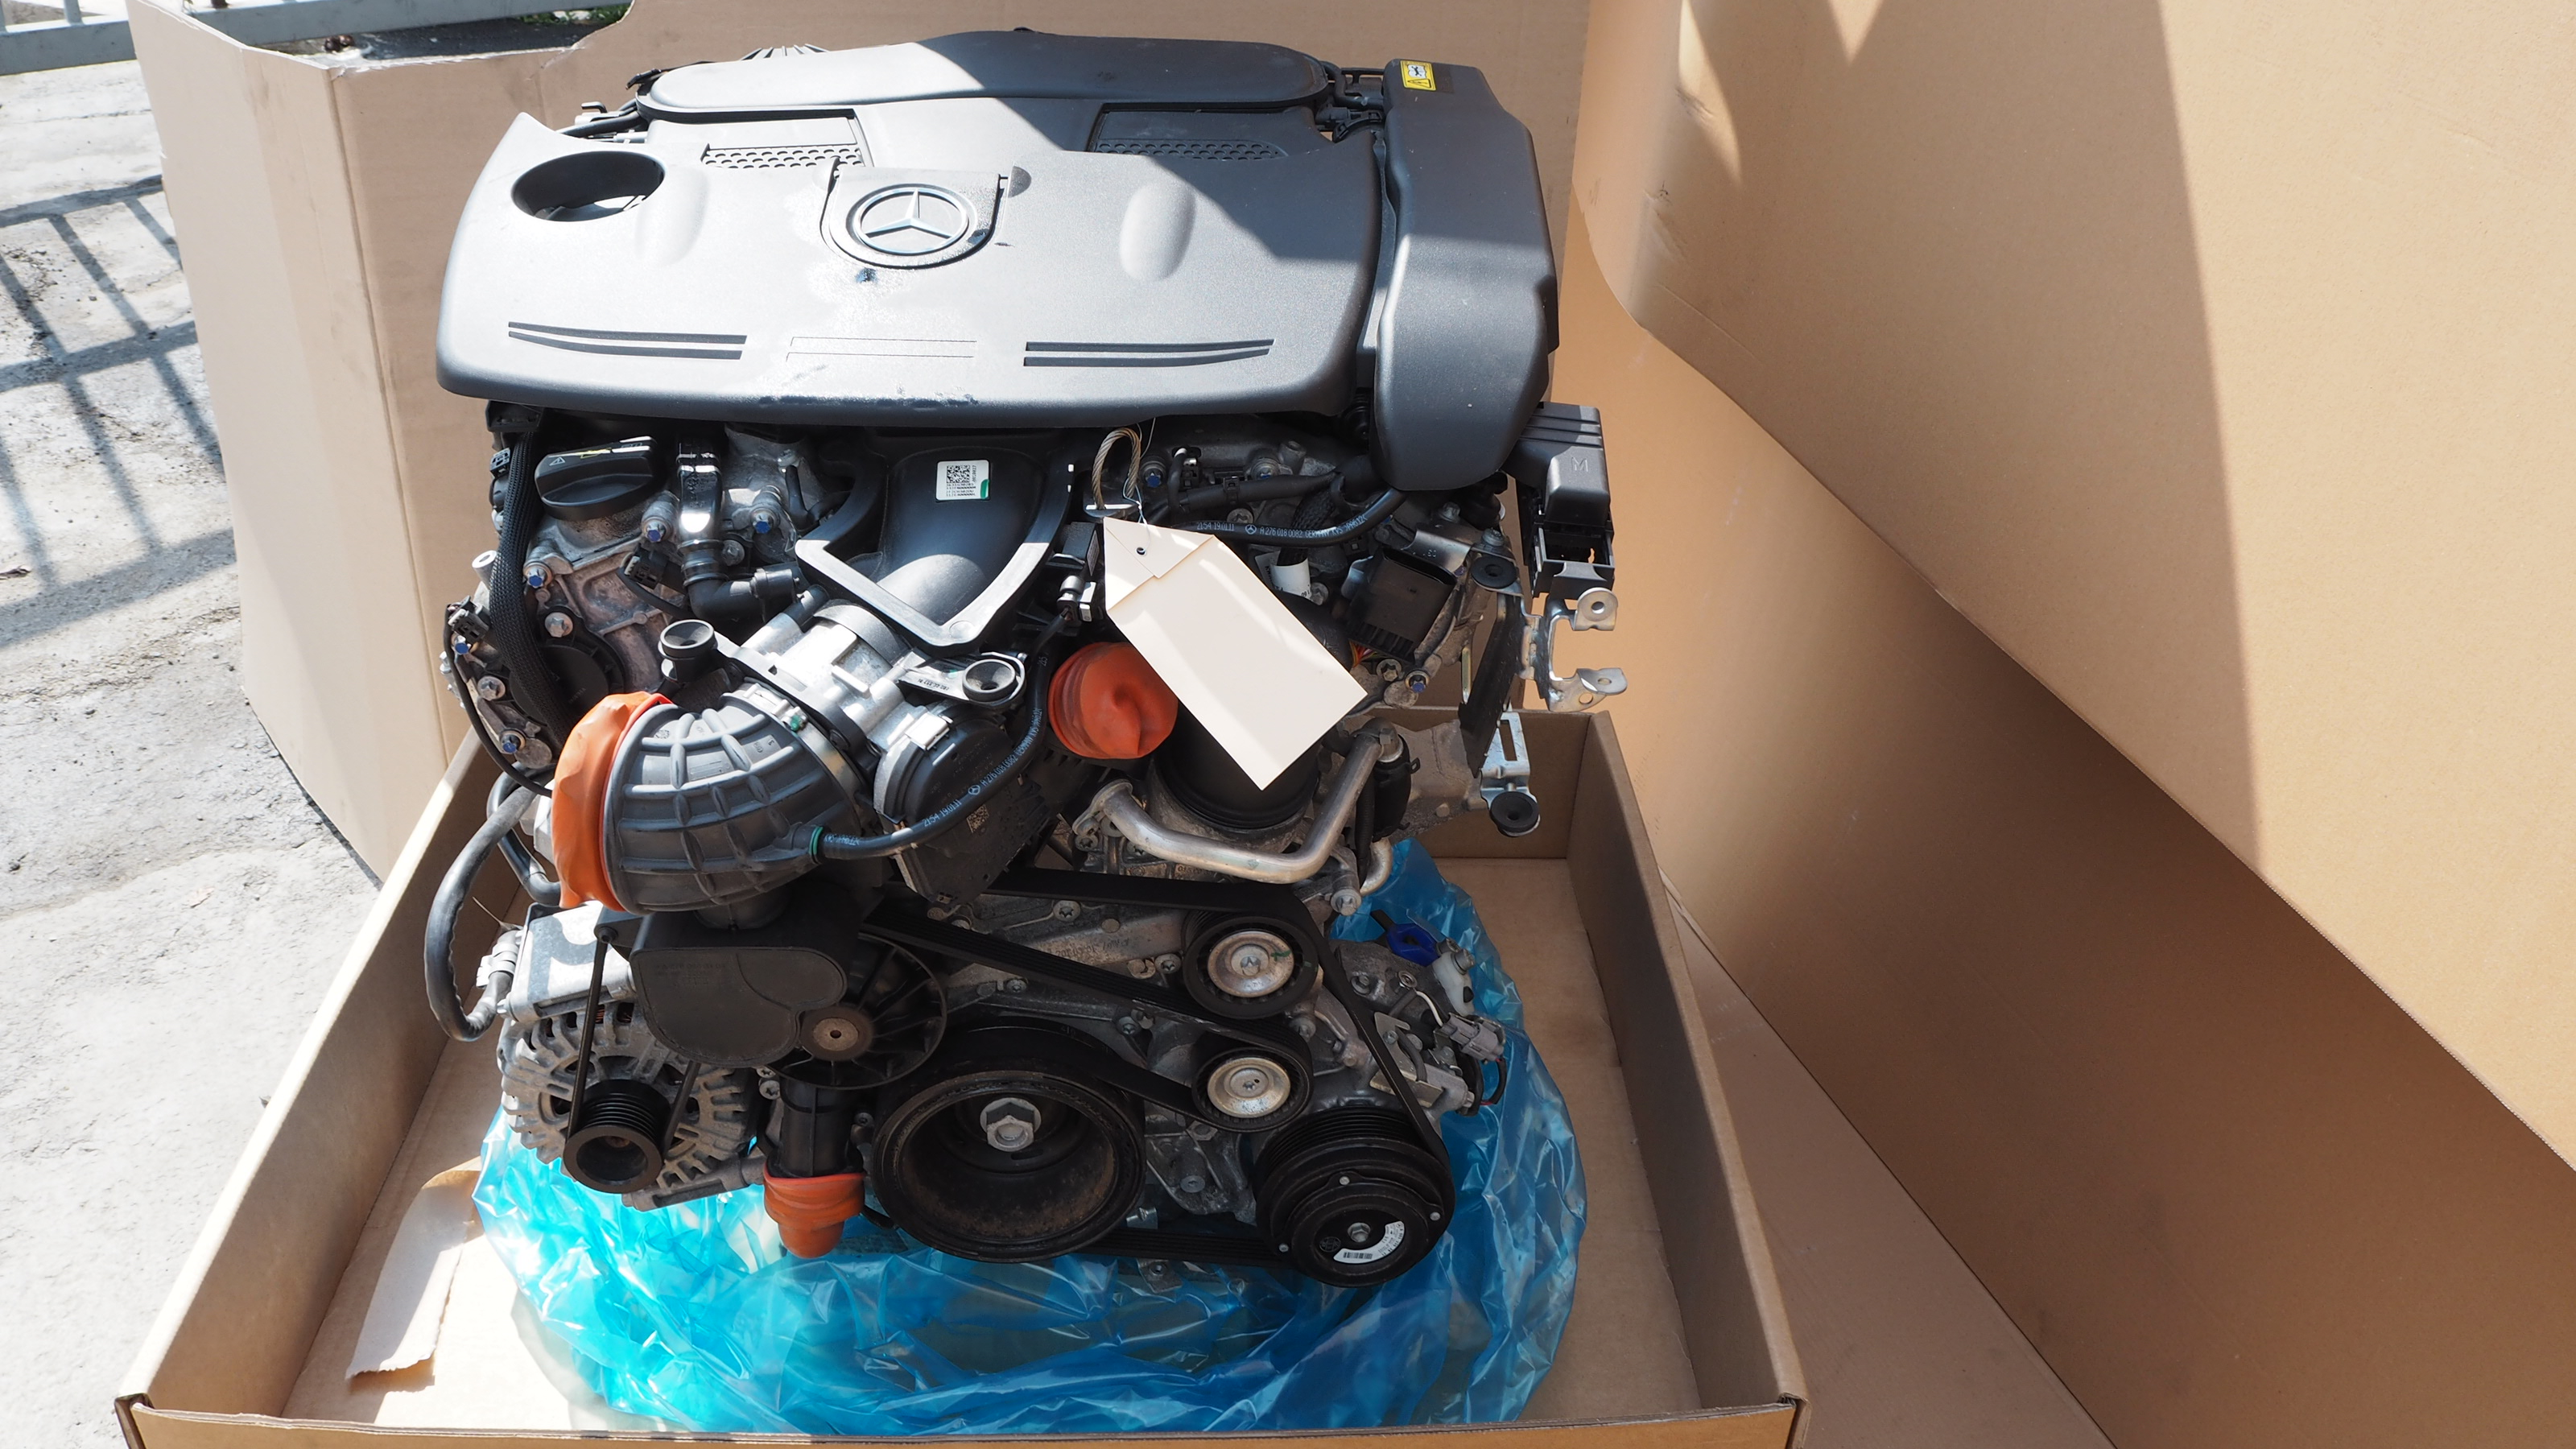 MERCEDES W218 W212 E250 2011 M276 952 4-MATIC ENGINE - Propel Autoparts